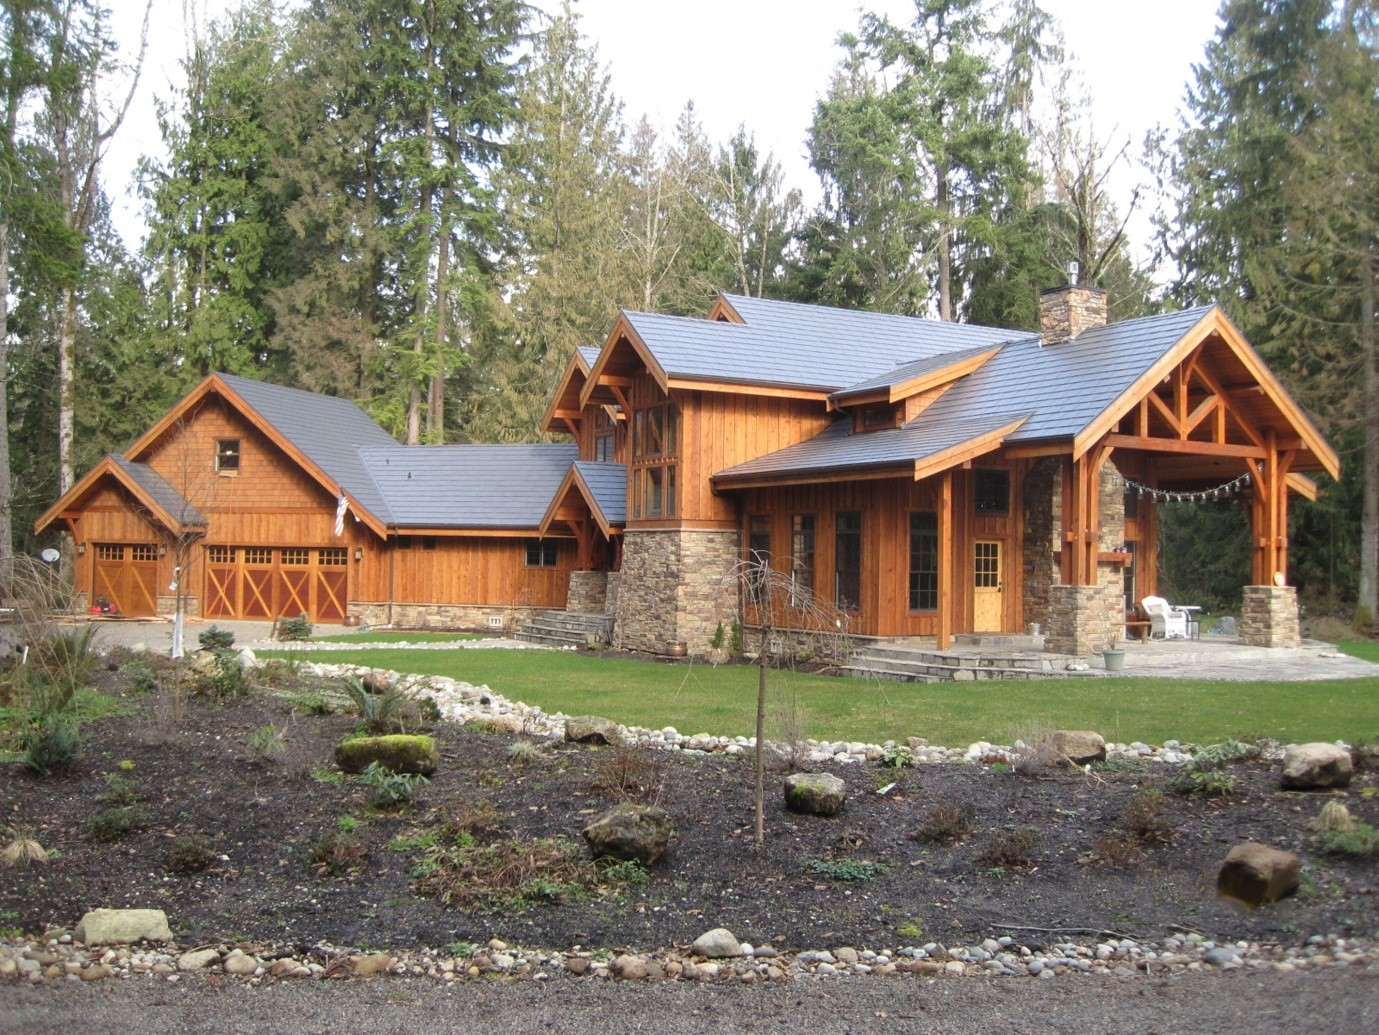 15 Log Home Maintenance Tips for the Inexperienced